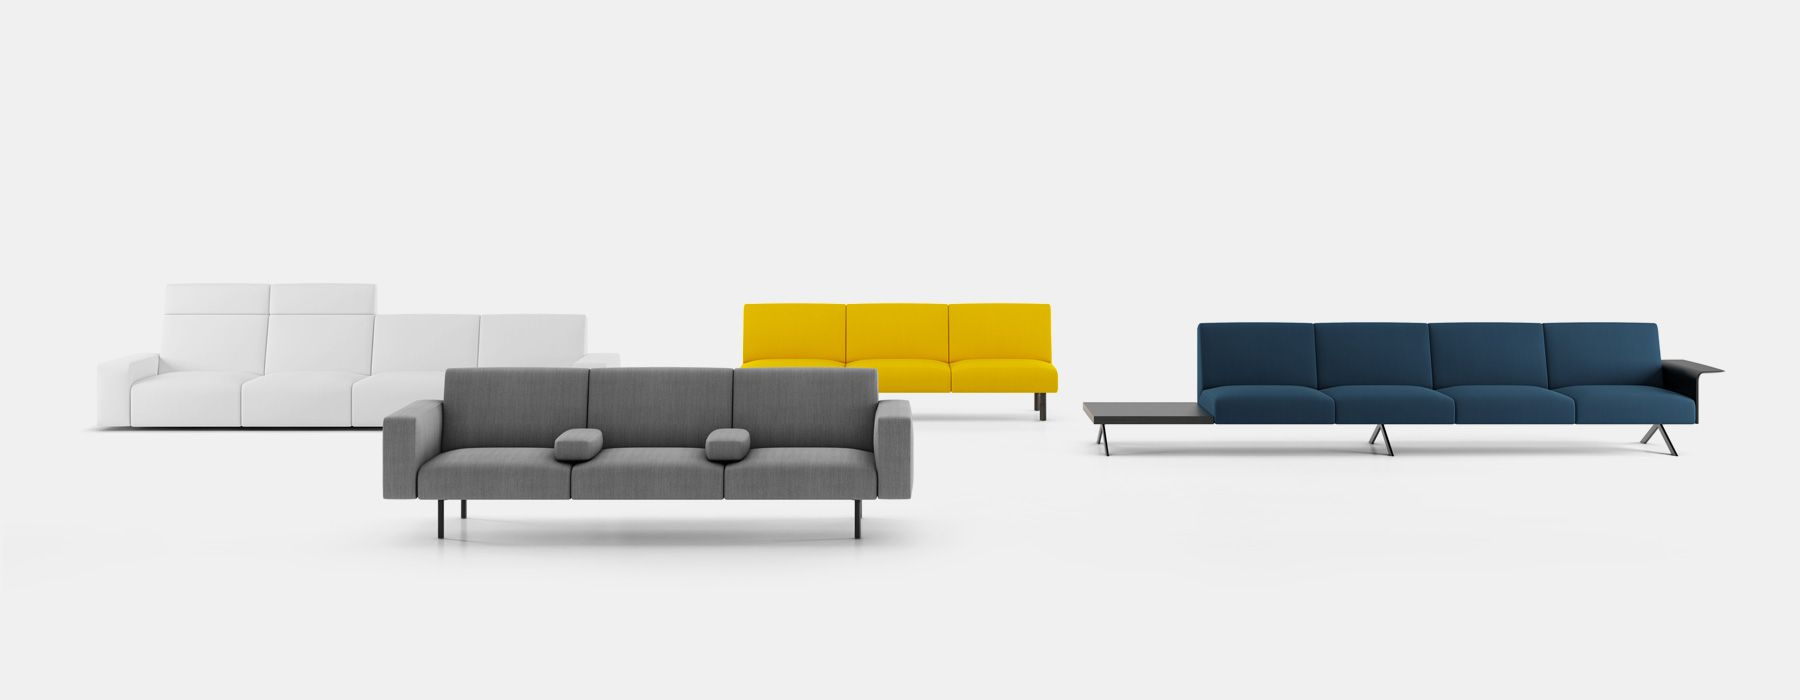 Superieur Lievore Altherr Molinau0027s Sistema Modular Sofa System For Viccarbe Is  Completely Customisable